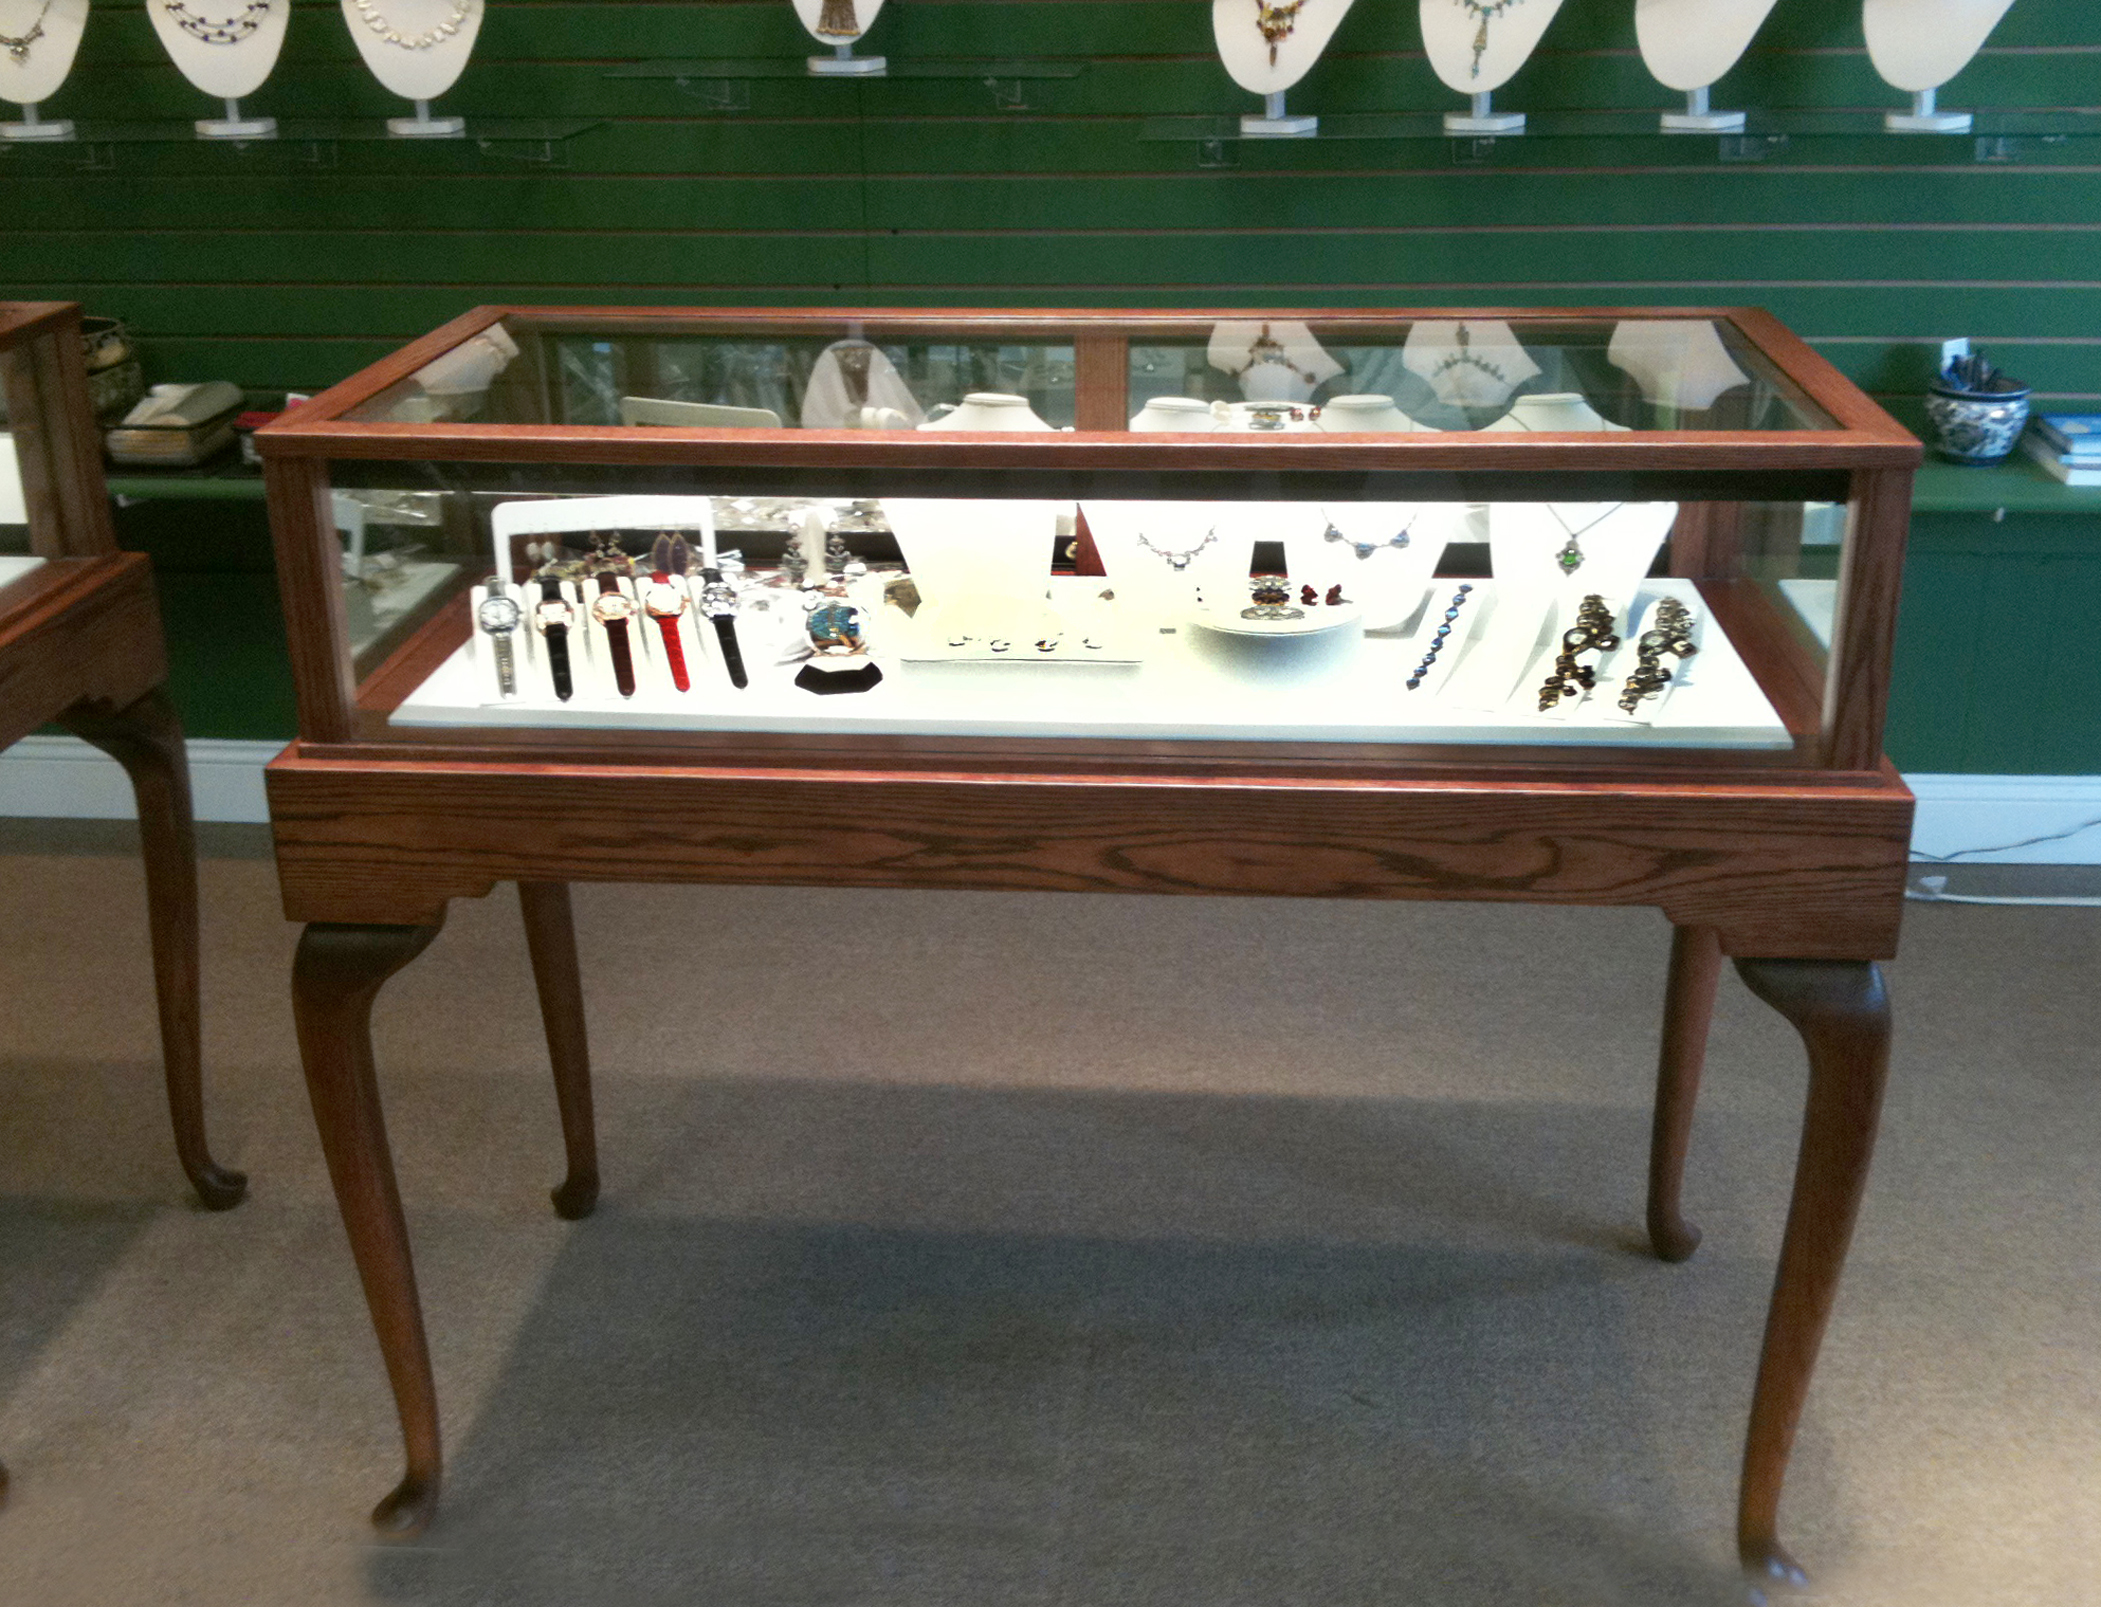 Queen Anne Jewelry Vision Display Case